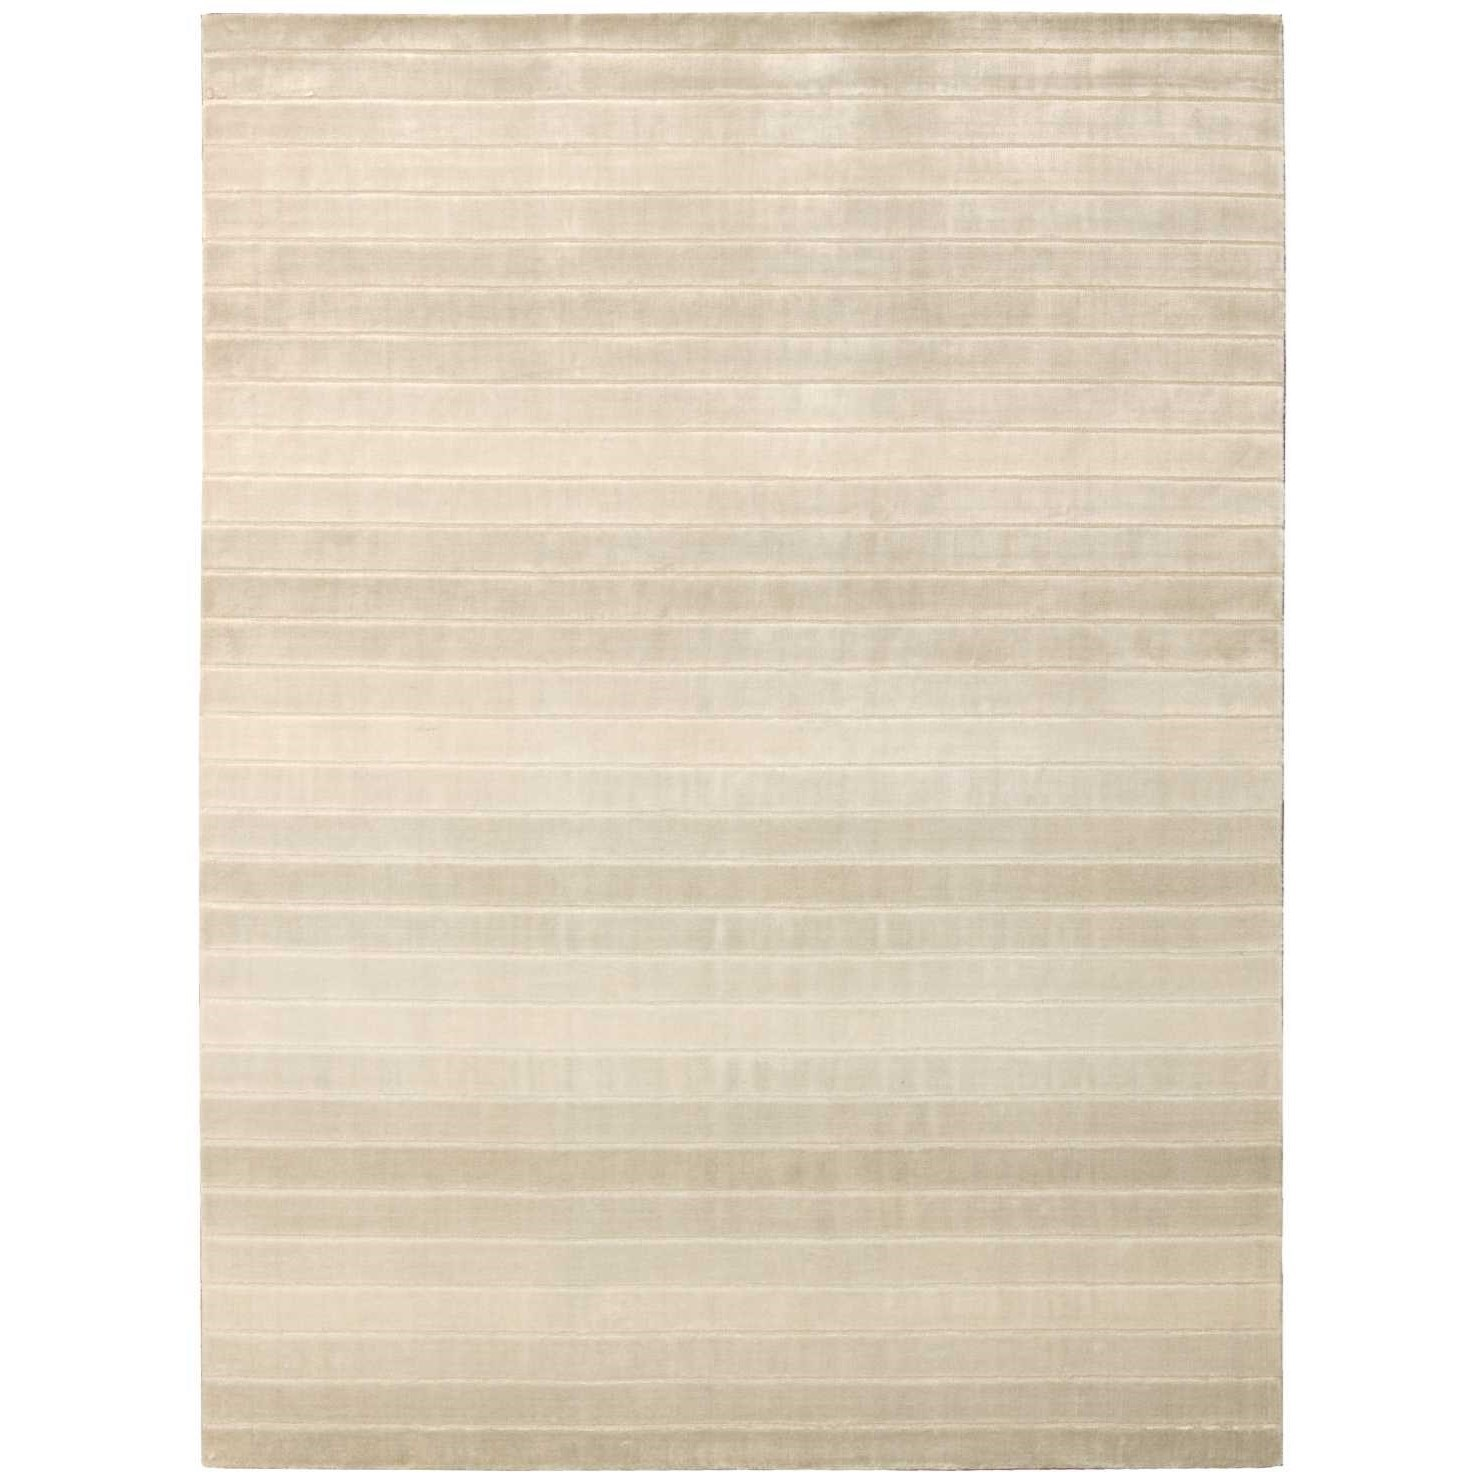 Nourison Aura 8' x 11' Tusk Rectangle Rug - Item Number: AUR01 TUSK 8X11